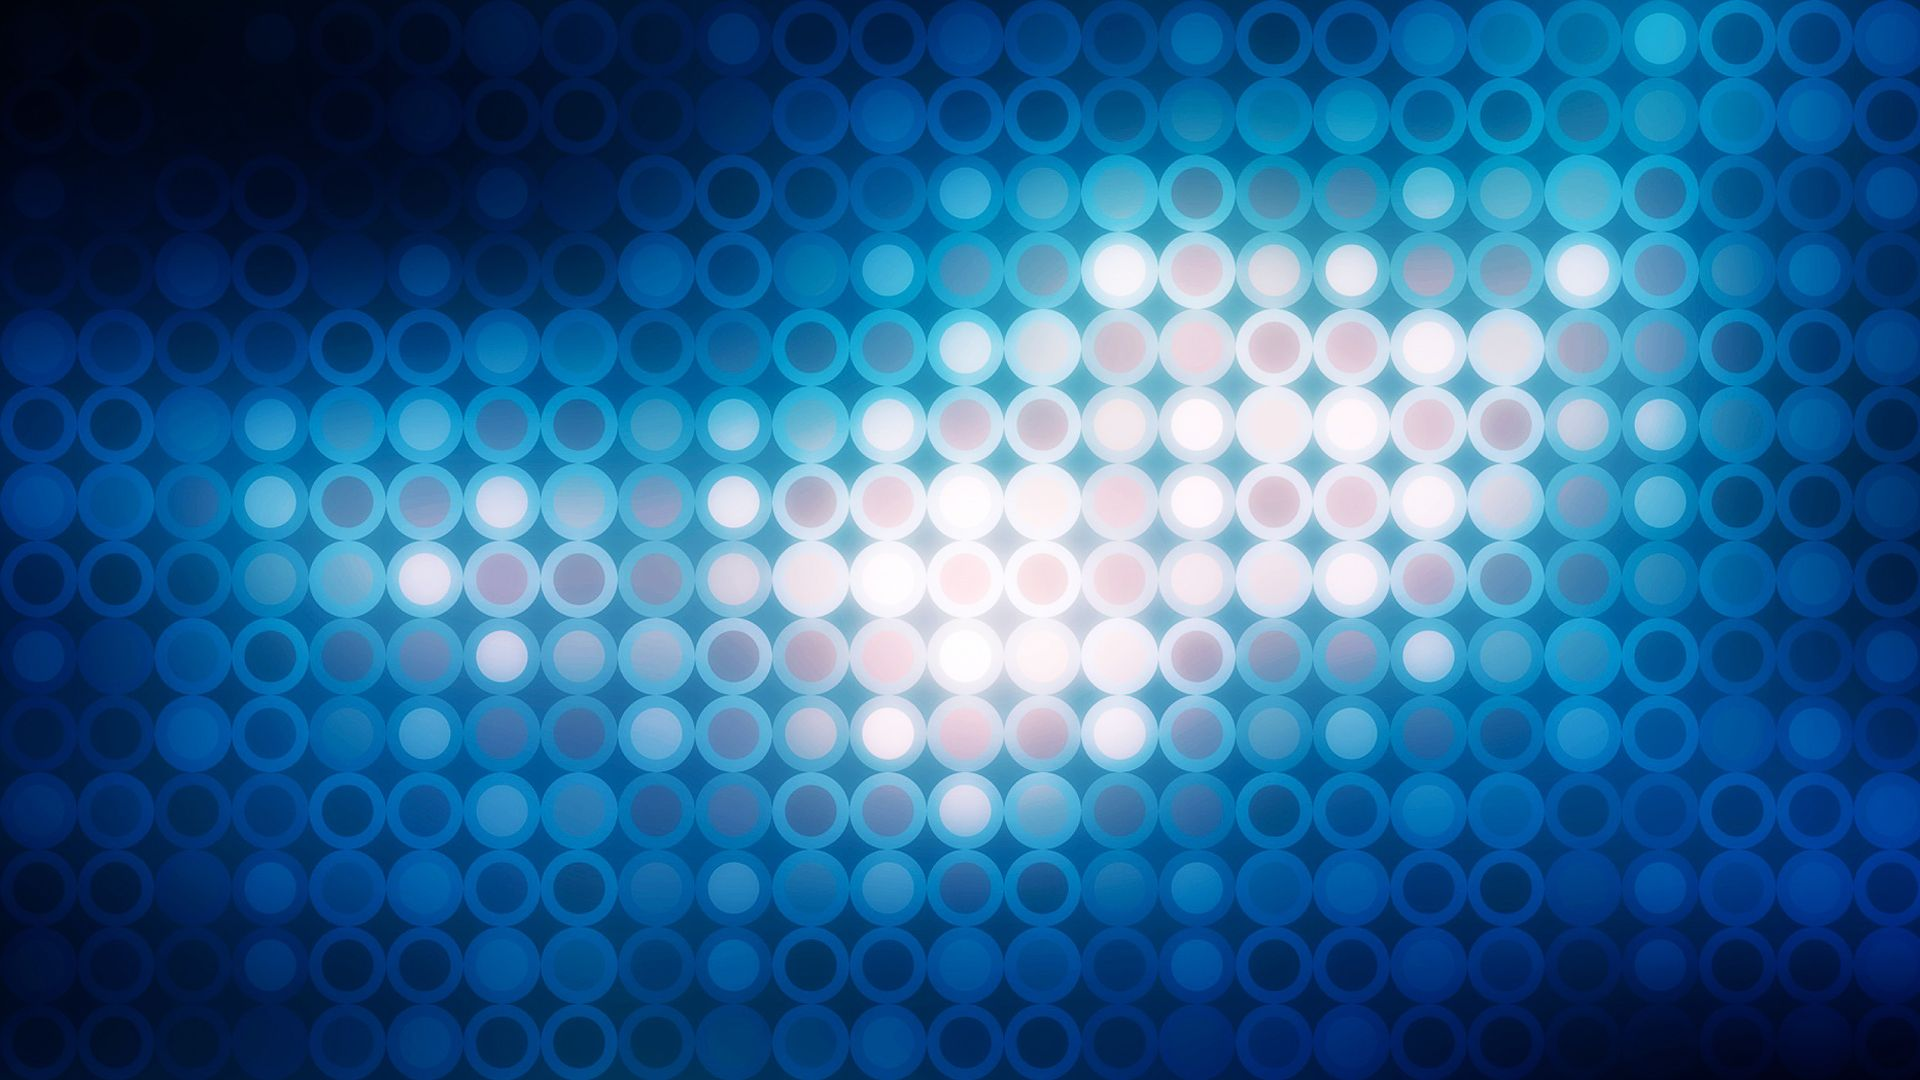 Light Blue Pattern HD Background Wallpaper | Places to Visit